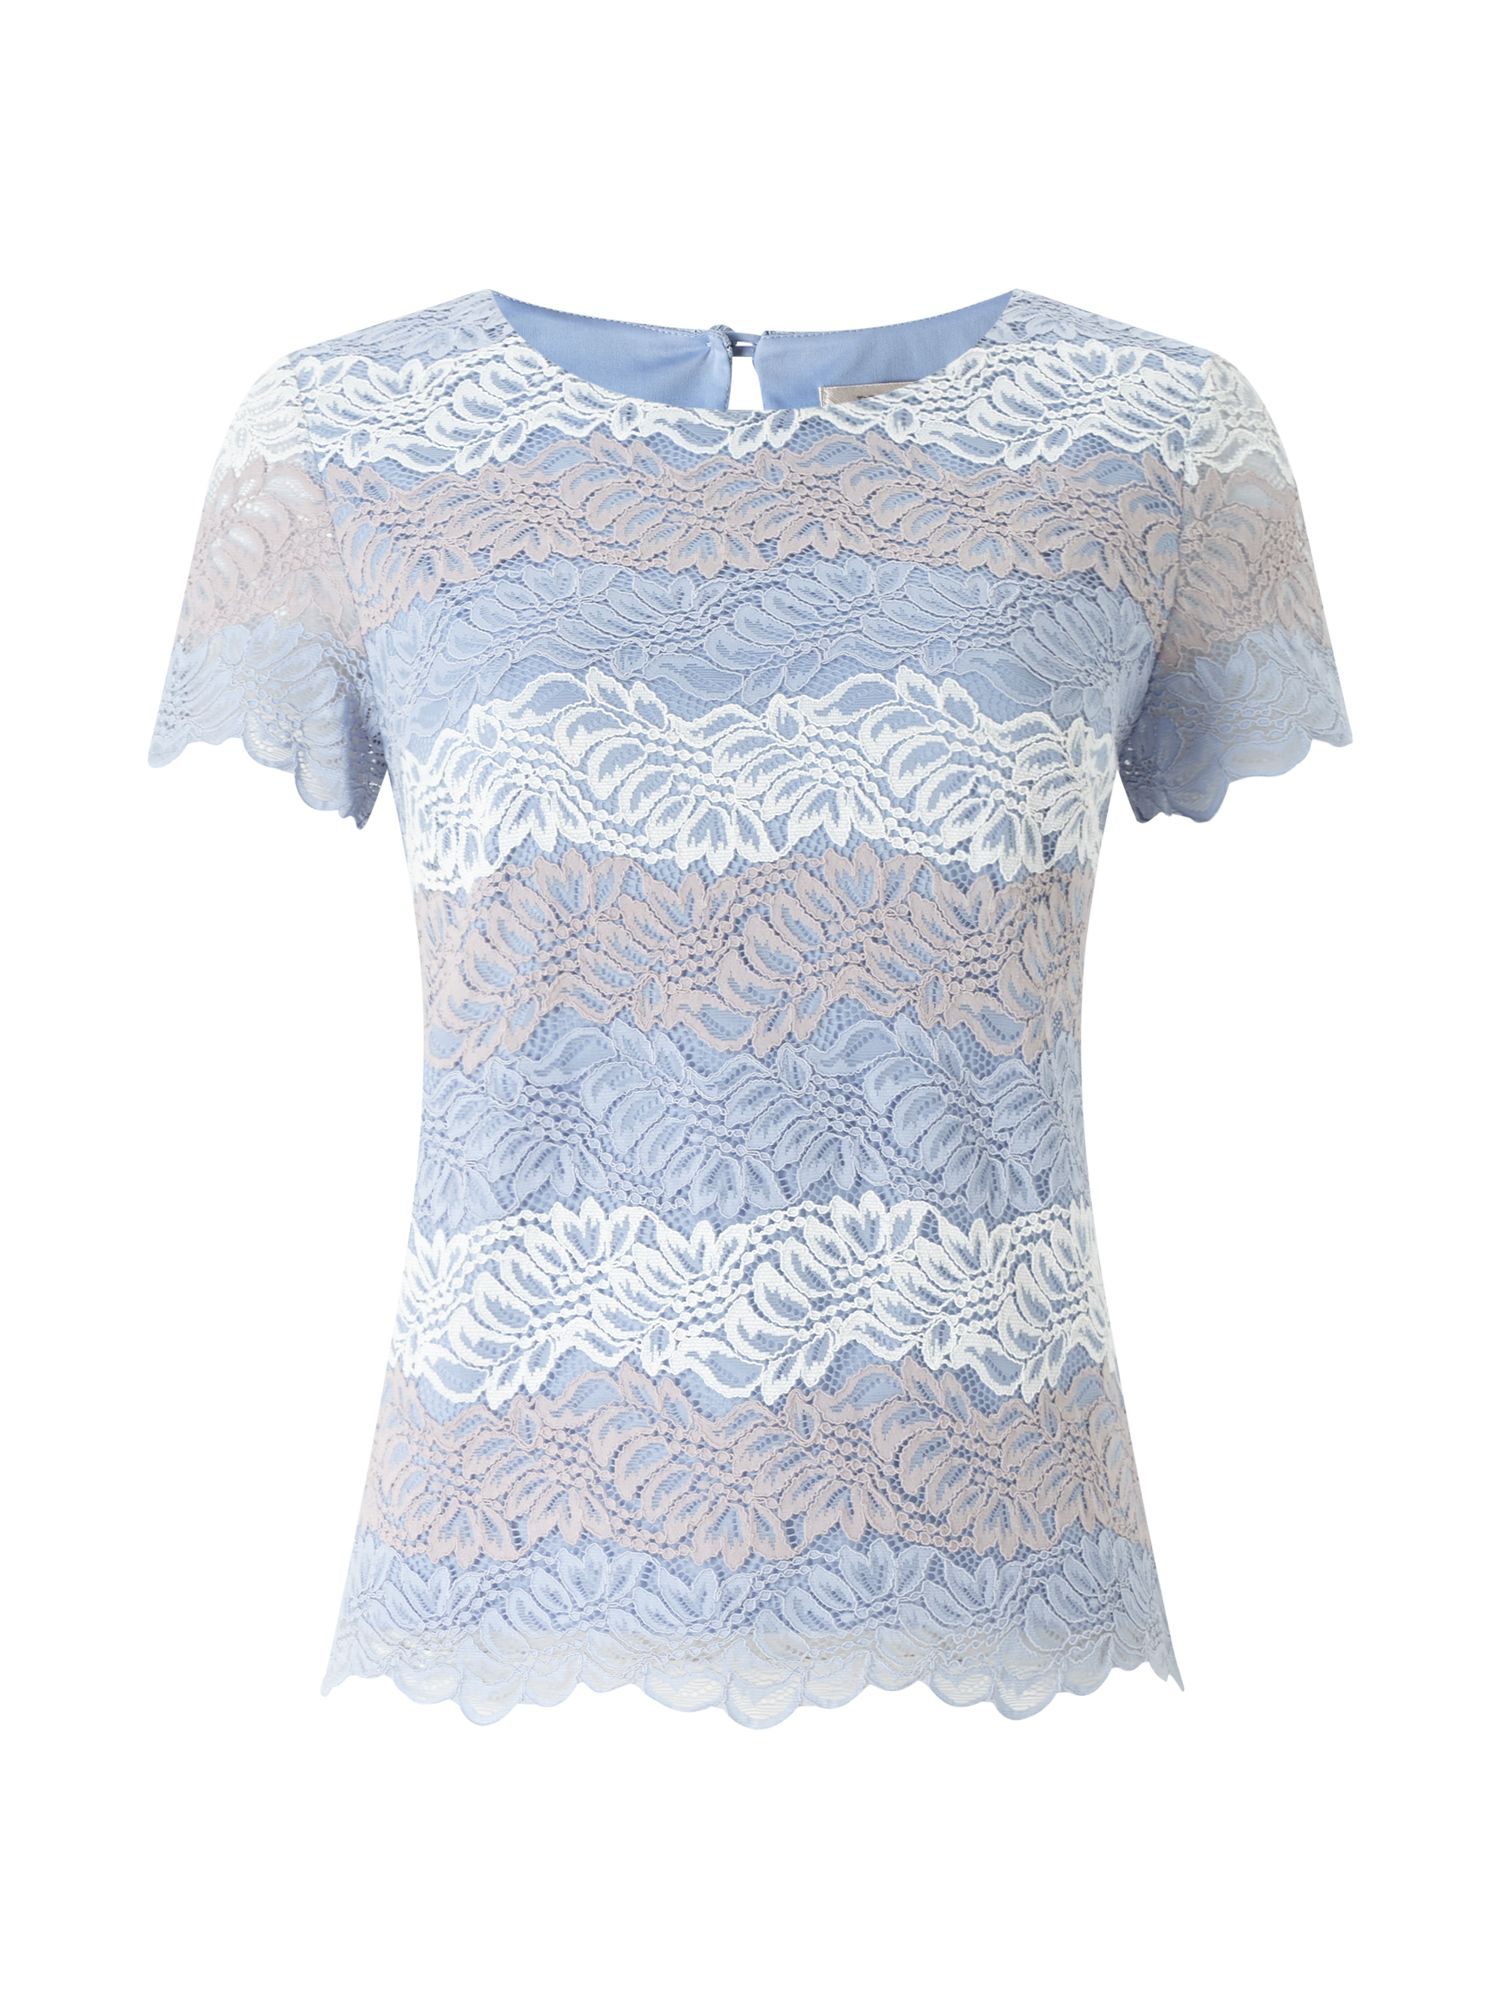 Precis Petite Petite Sara Stripe Lace Top, Blue